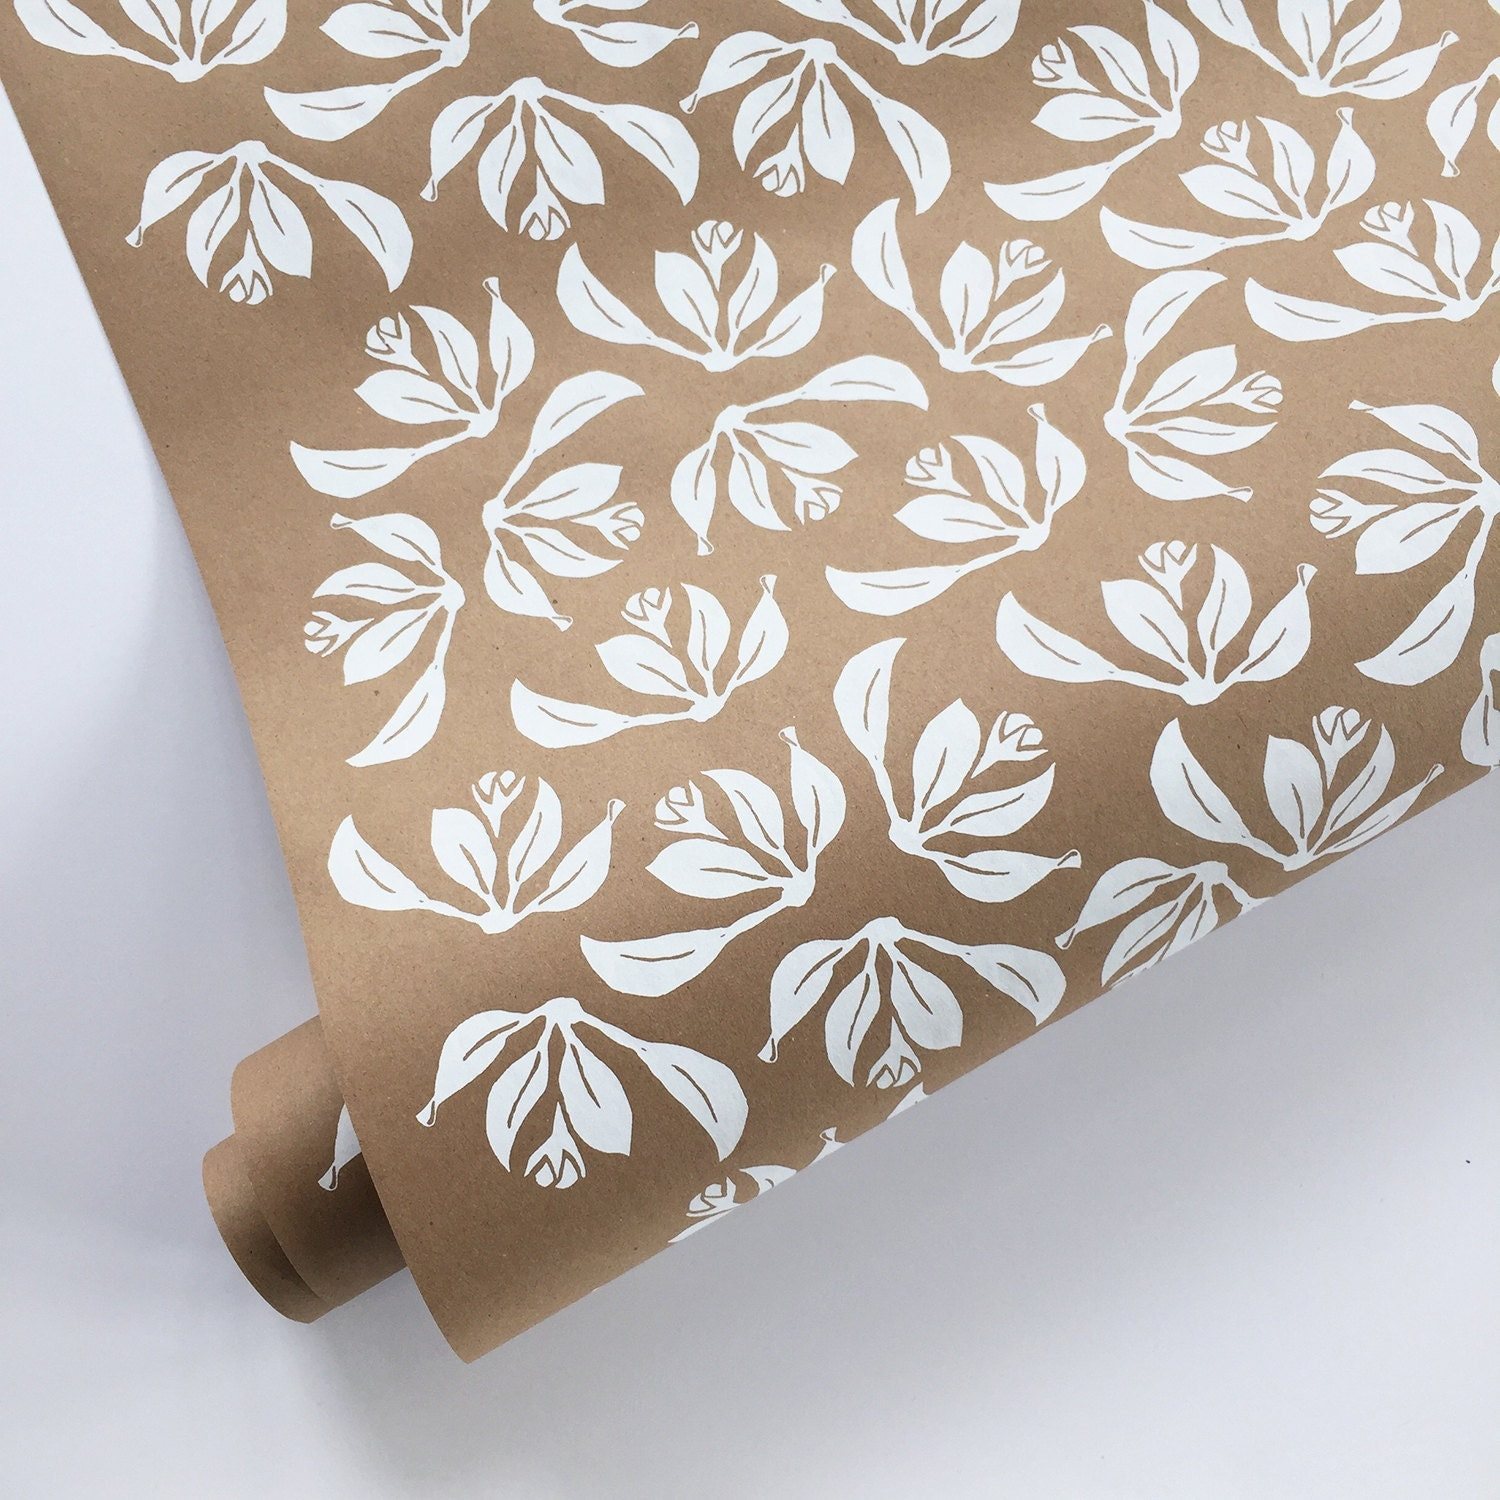 floral wrapping paper white wrapping paper roll kraft. Black Bedroom Furniture Sets. Home Design Ideas